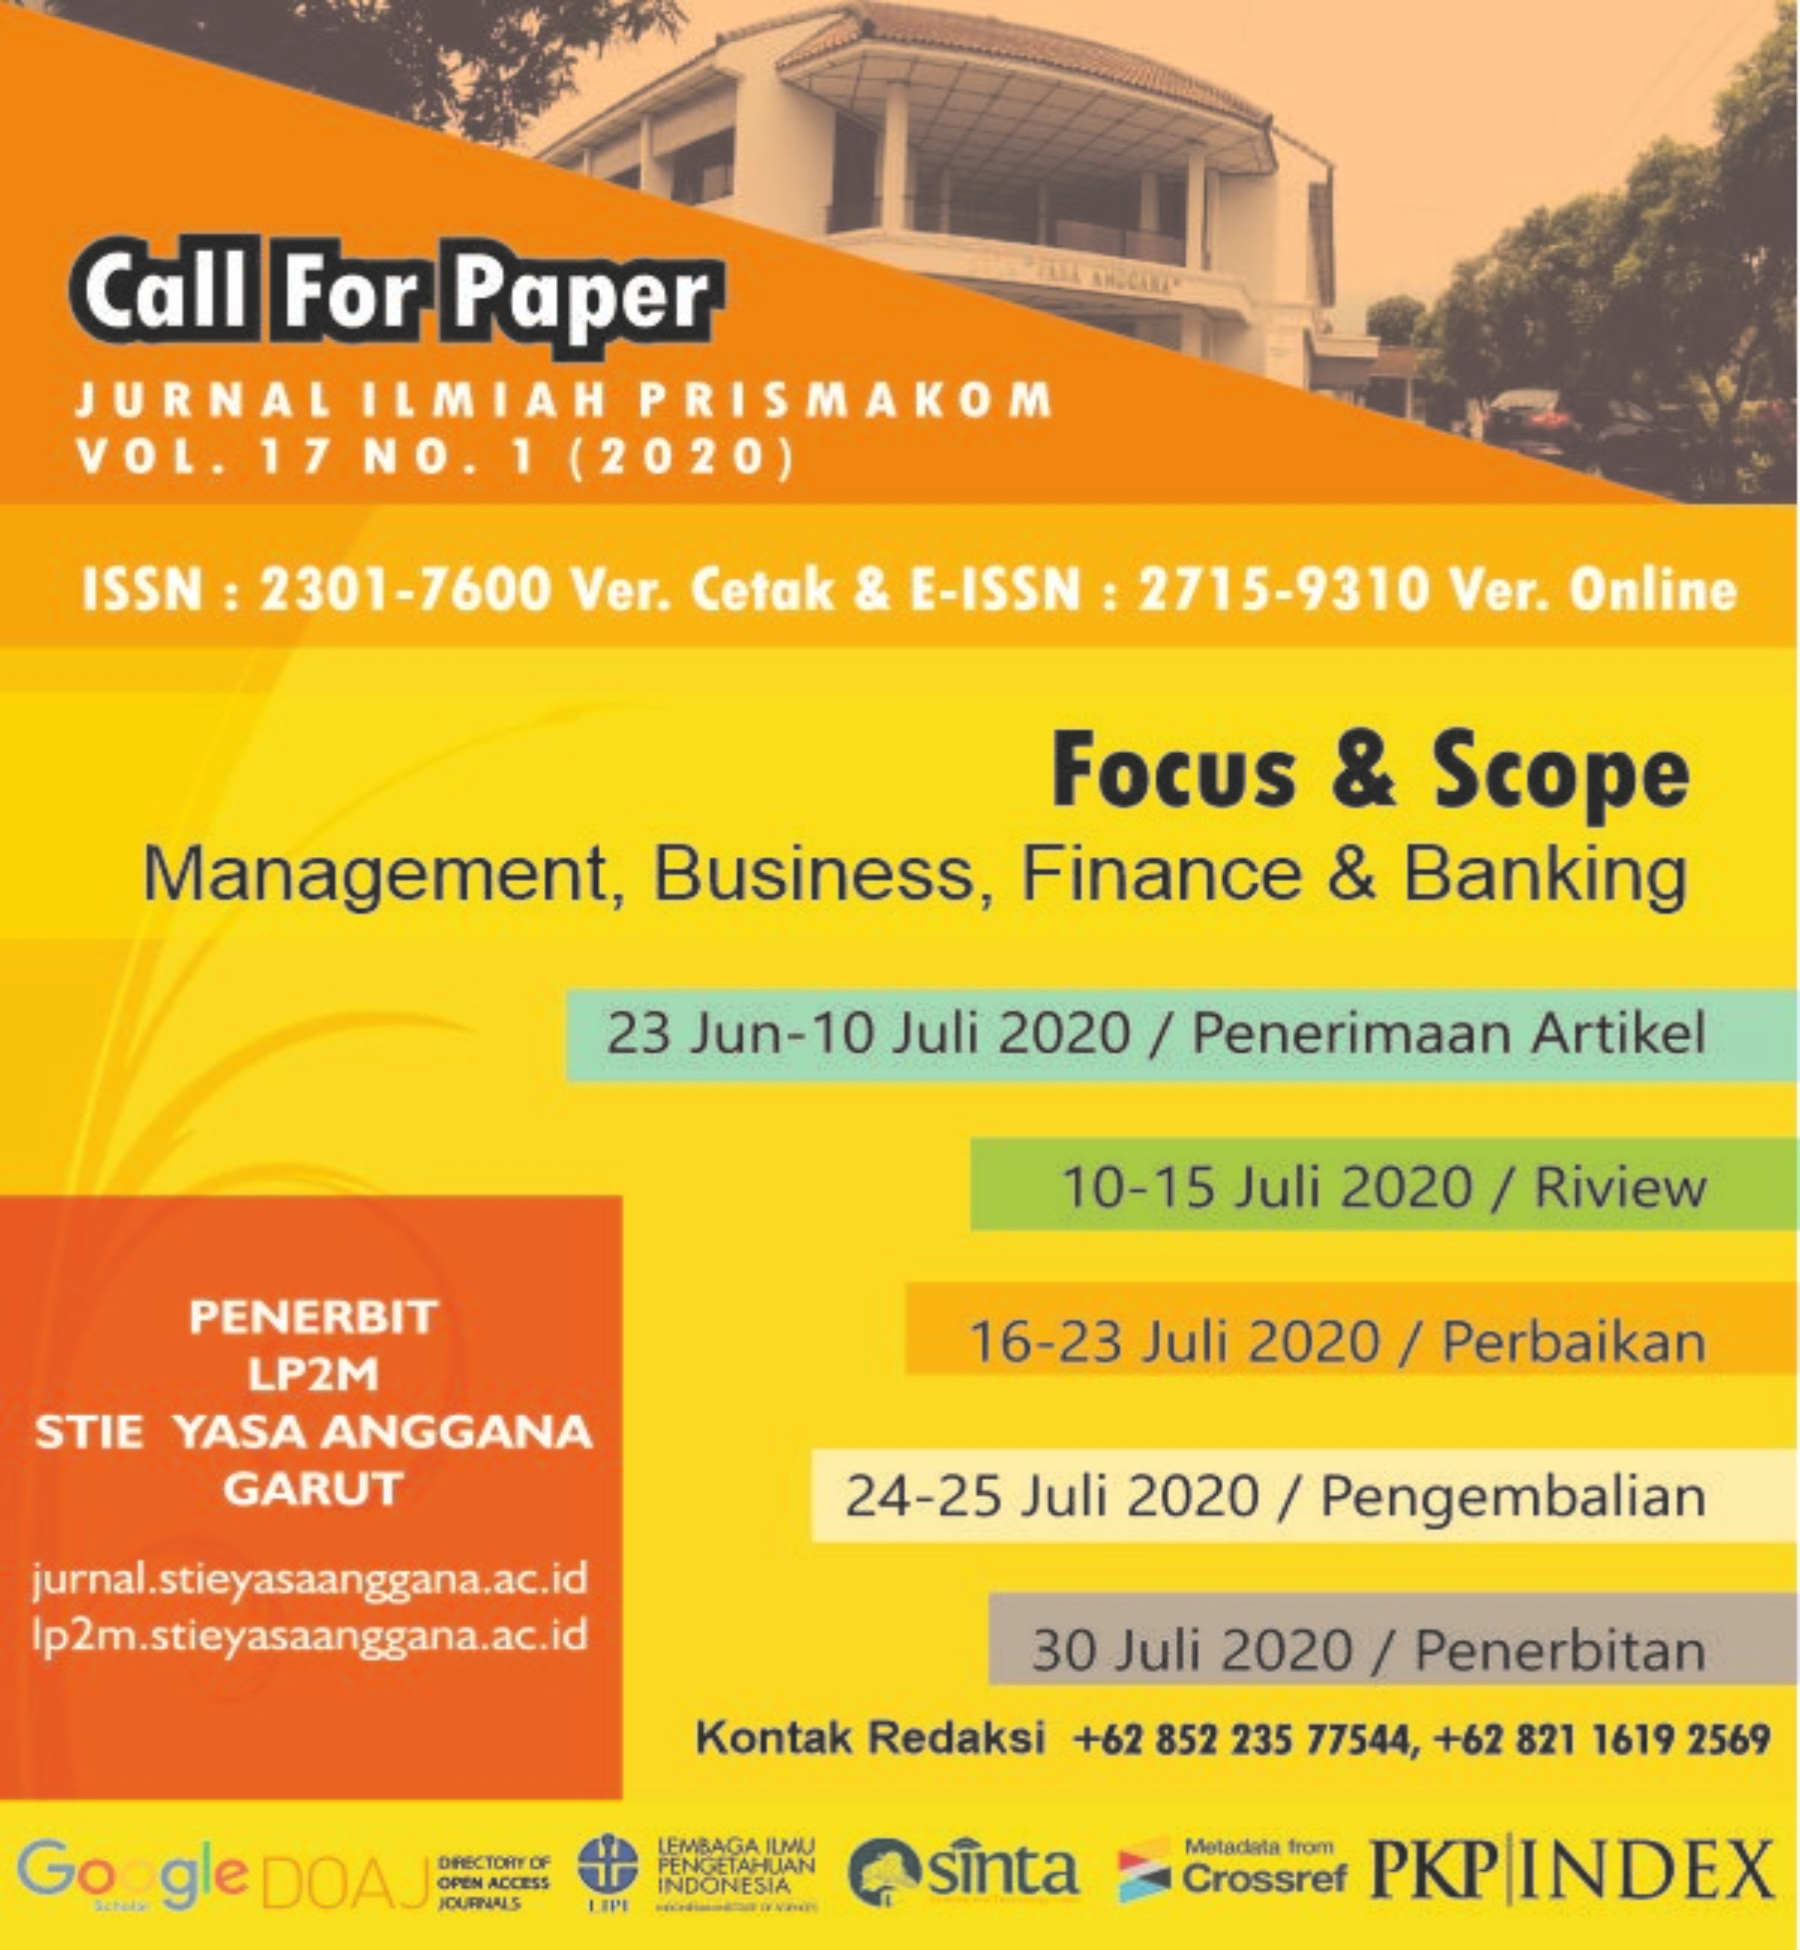 Call Paper Vol. 17 No. 1 Tahun 2020